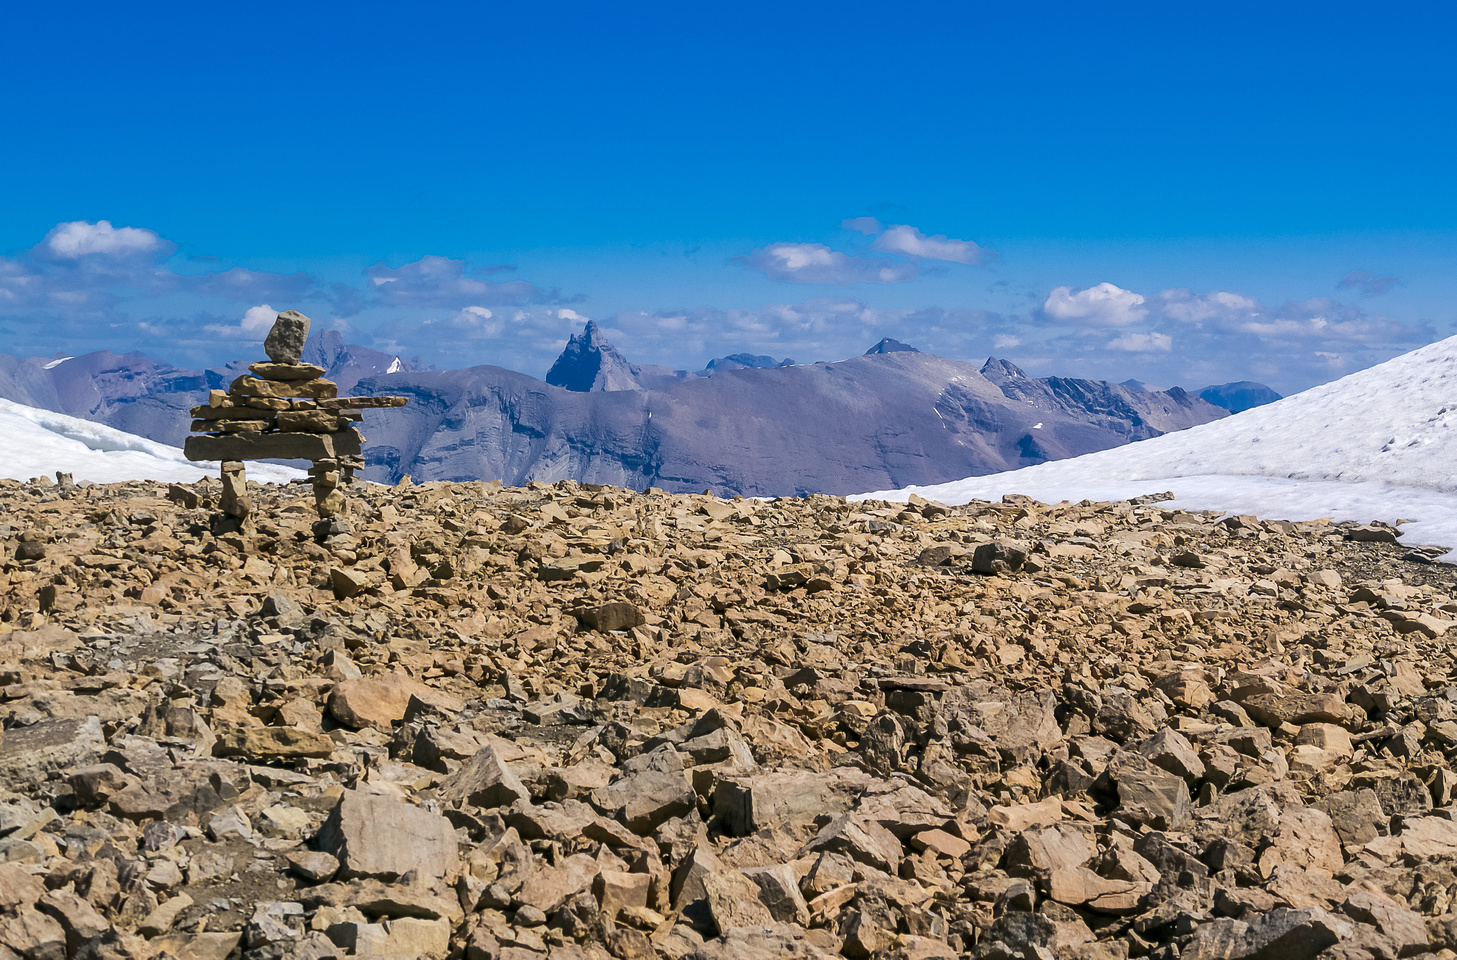 Summit cairn with Recondite in the bg.